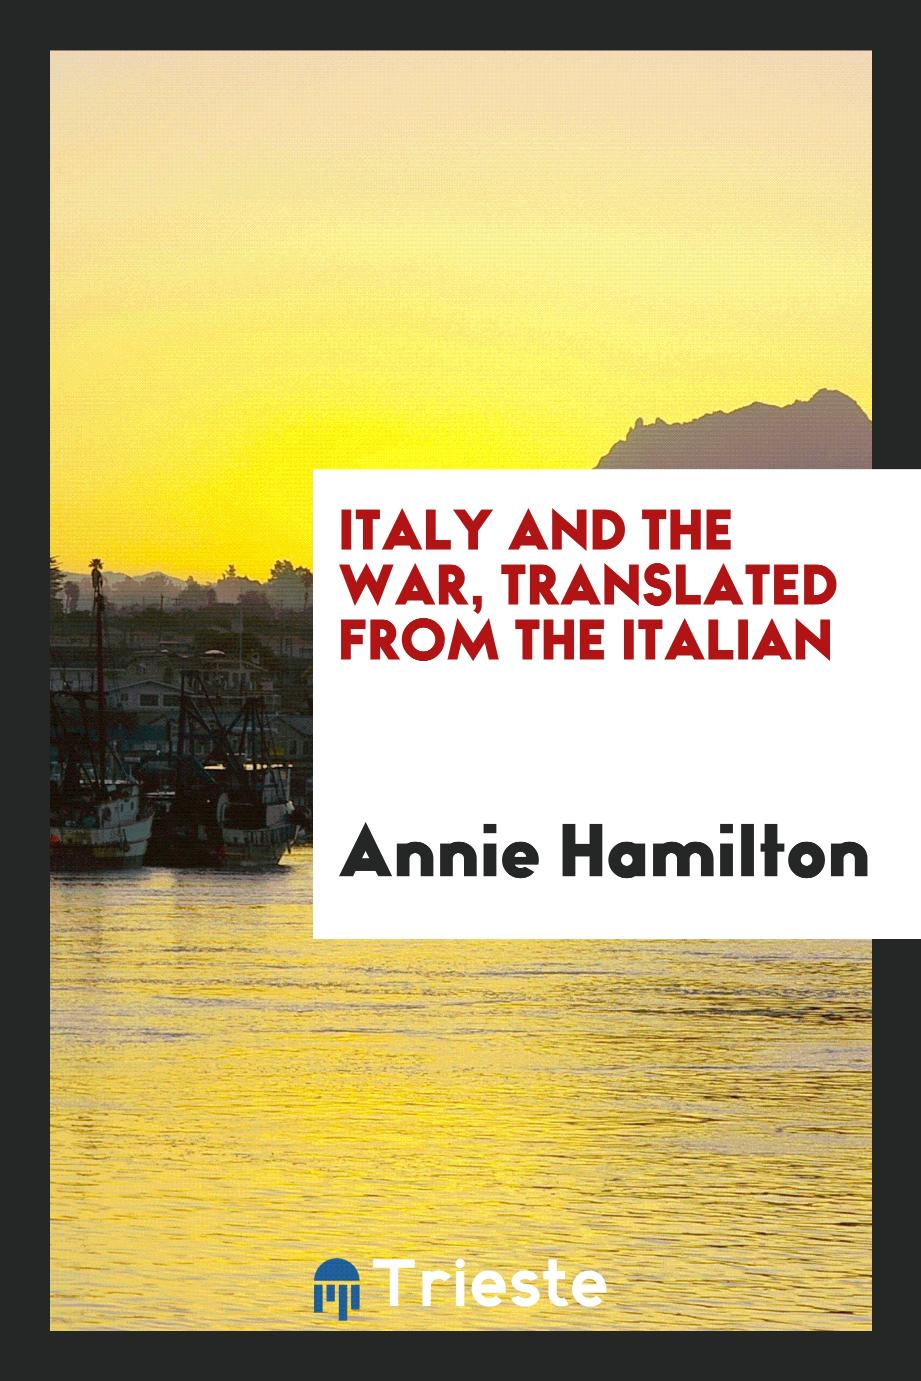 Annie Hamilton - Italy and the war, translated from the Italian